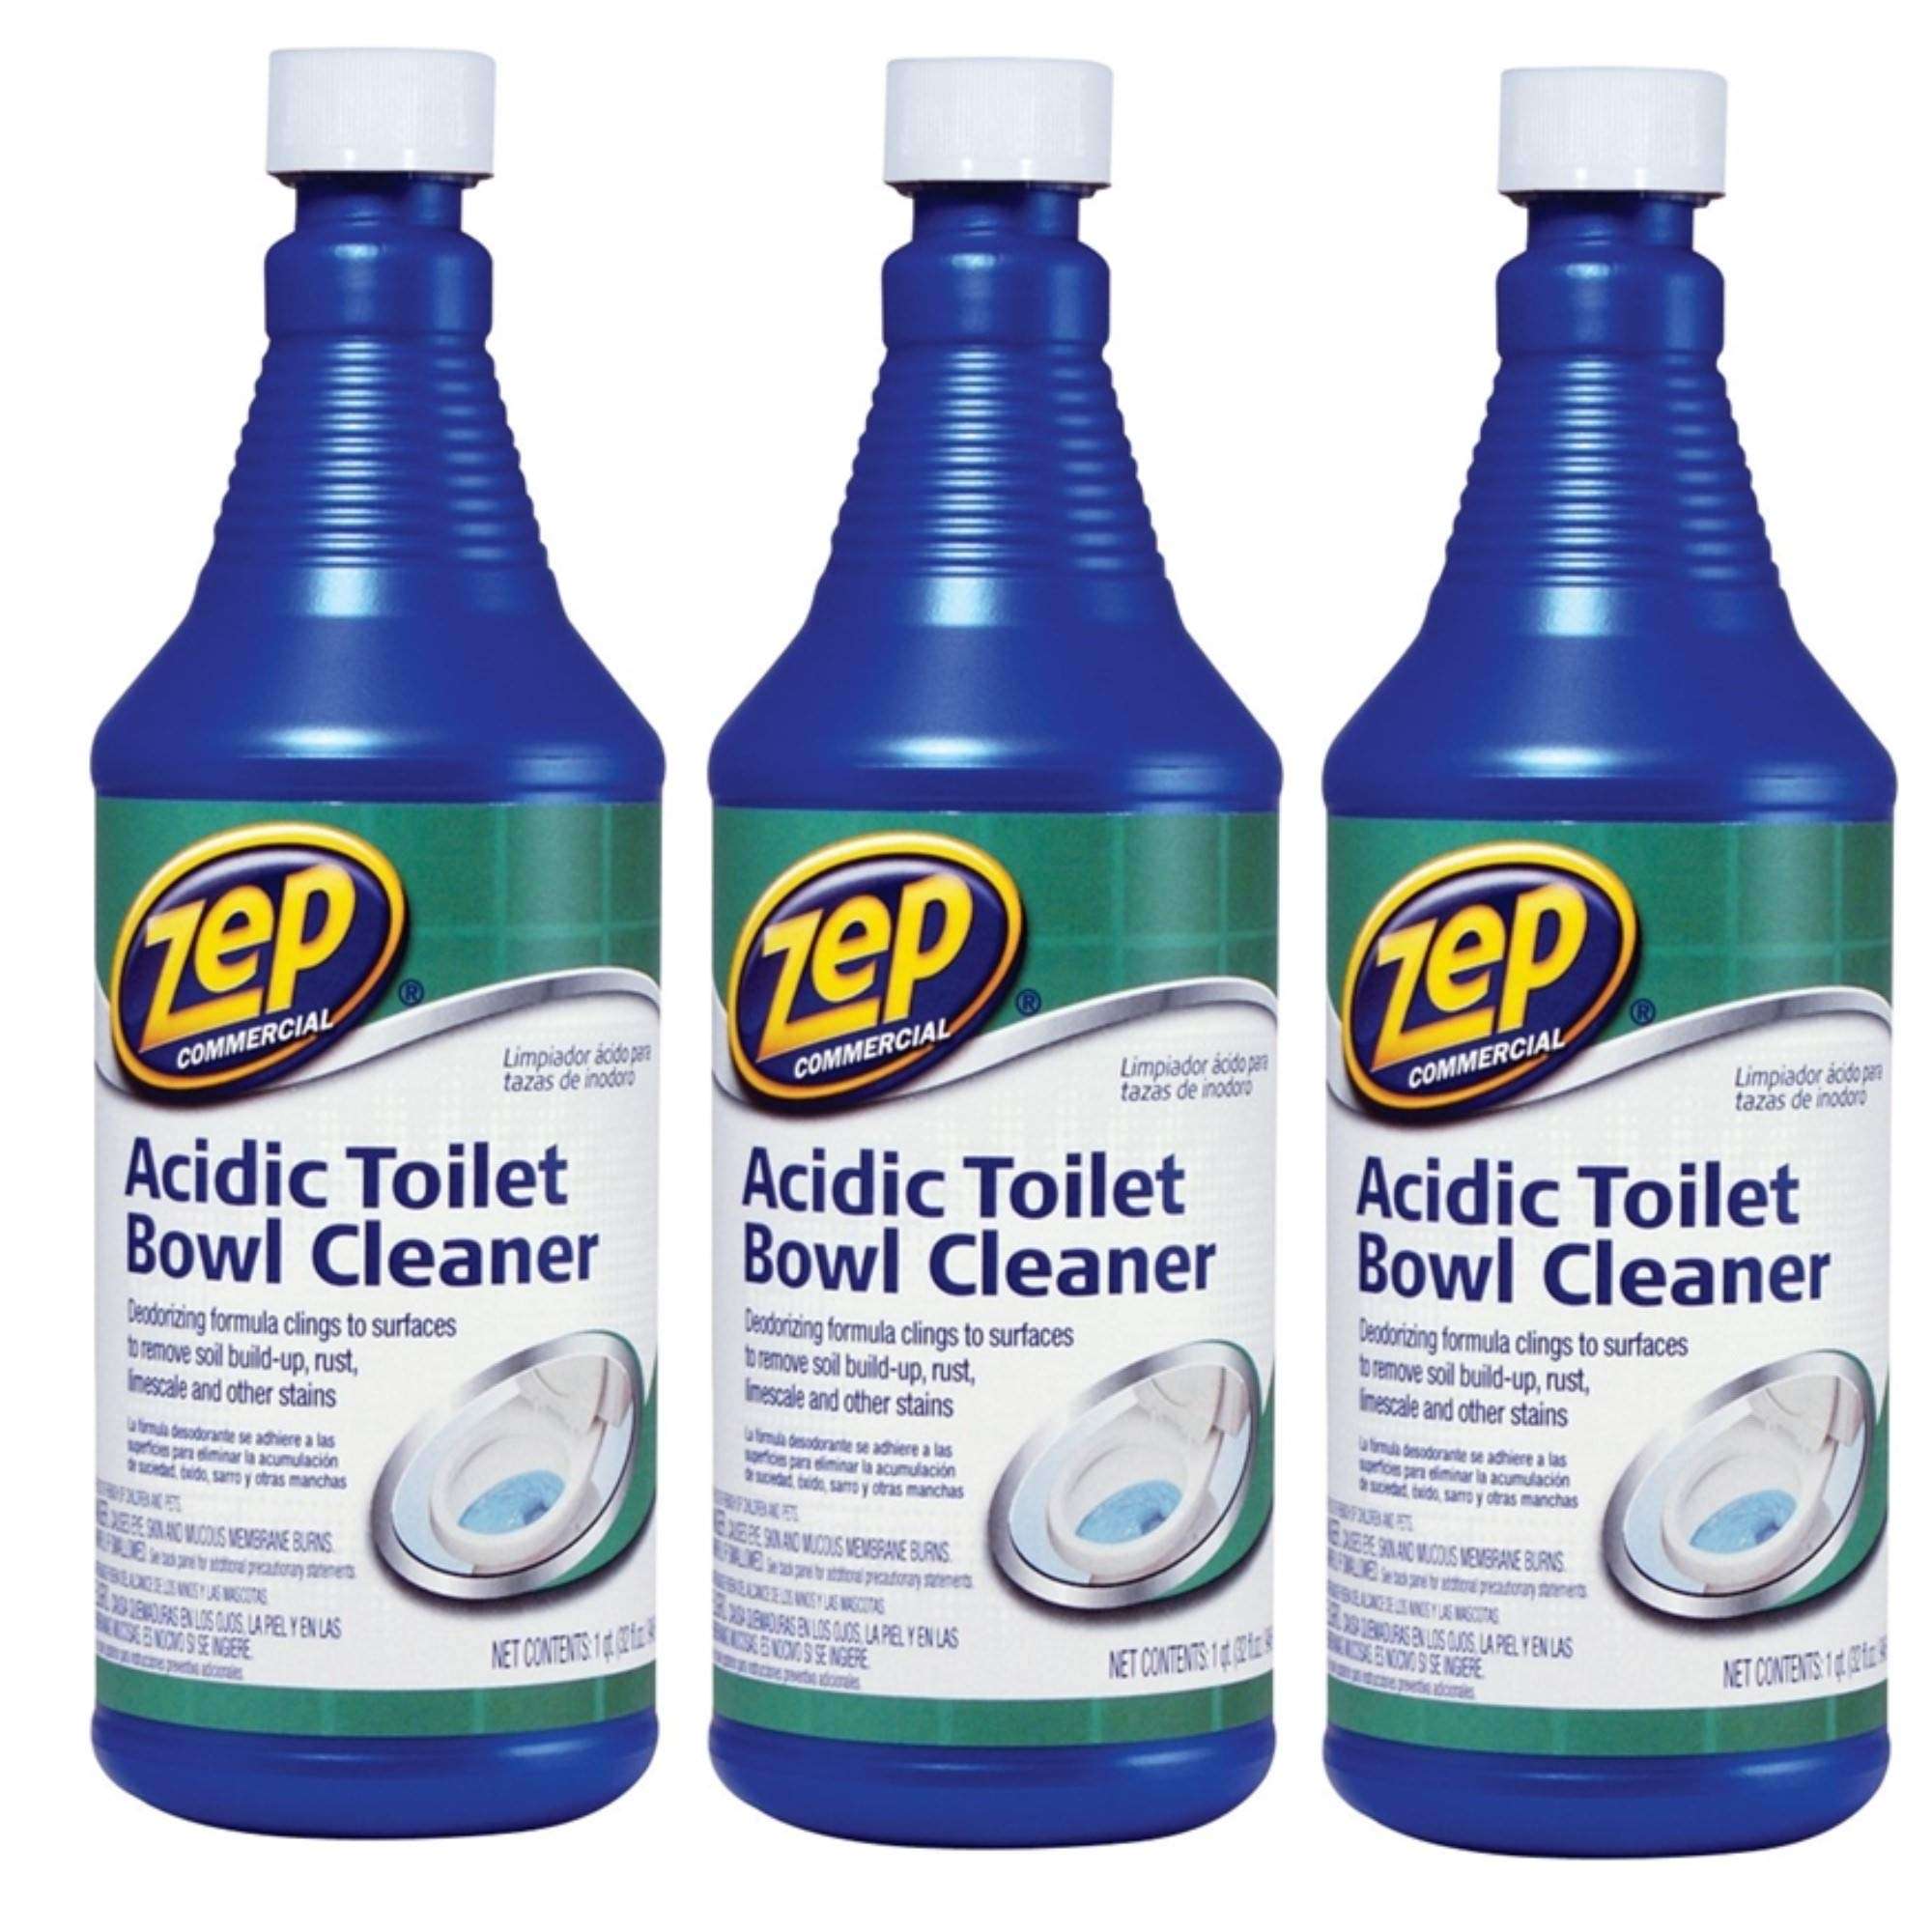 Zep Commercial Acidic Toilet Bowl Cleaner, 32 Ounce - 3 PACK